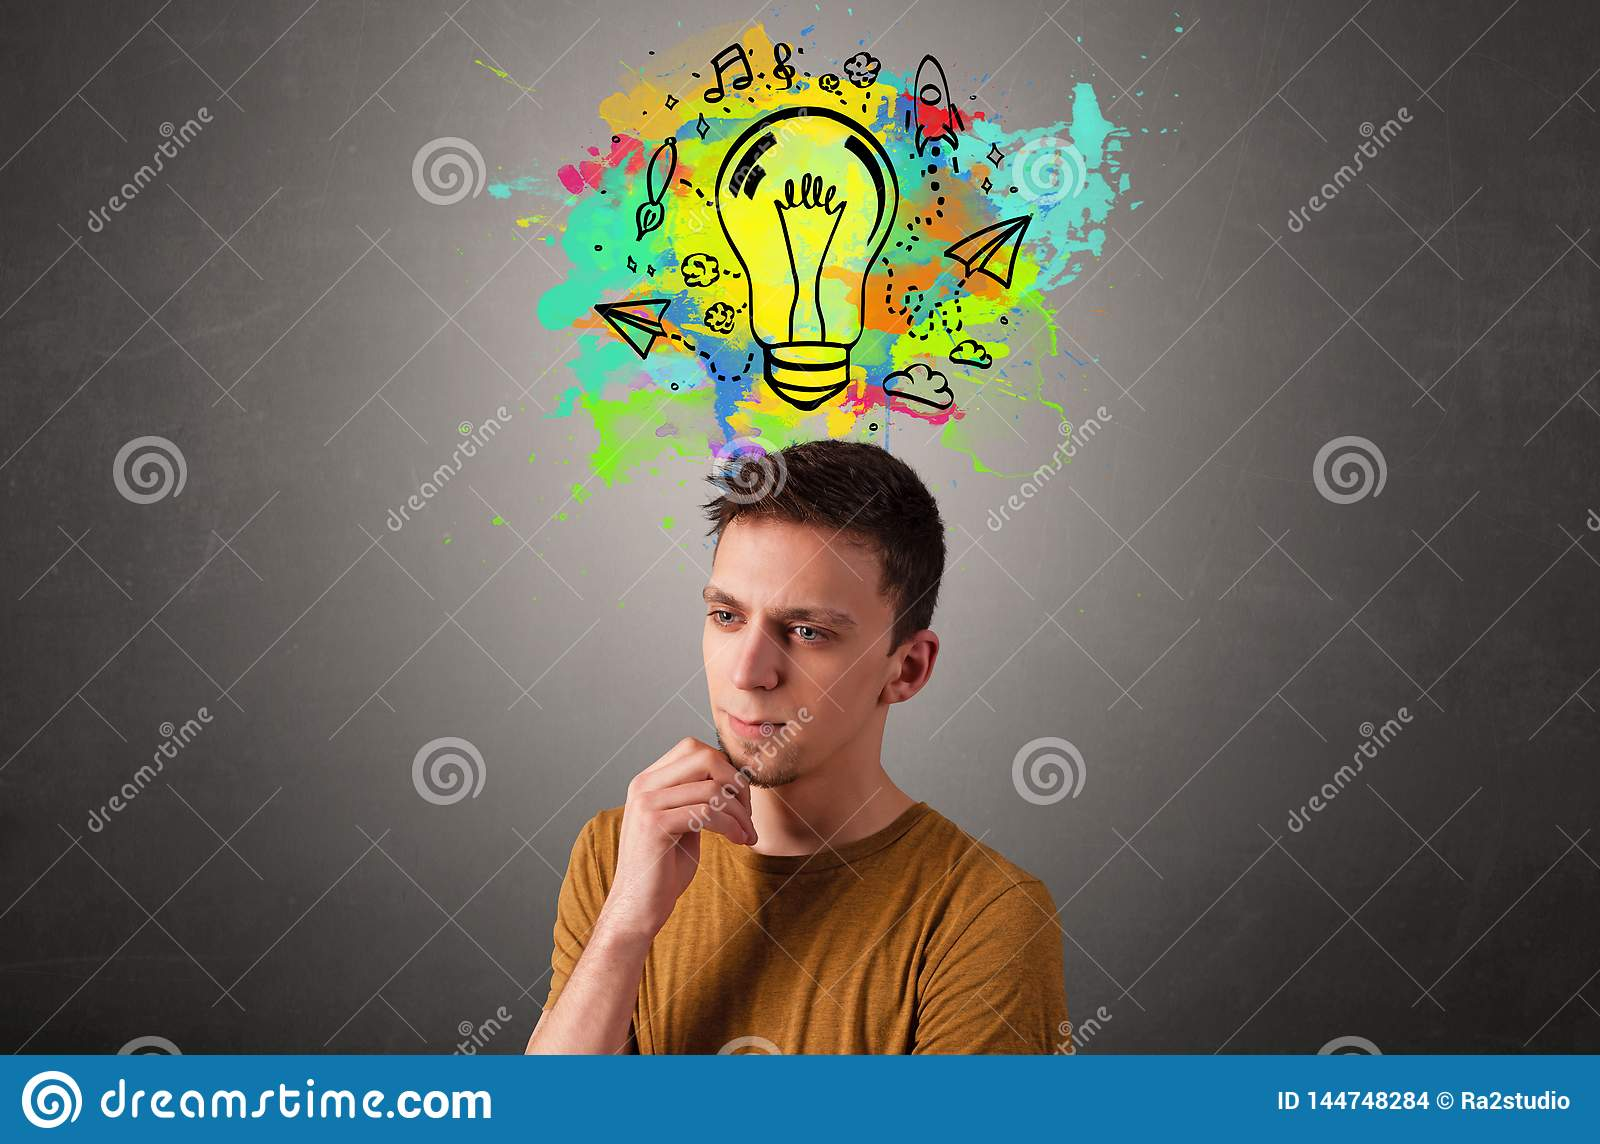 Design Thinking Concept Background Stock Images - Download ...